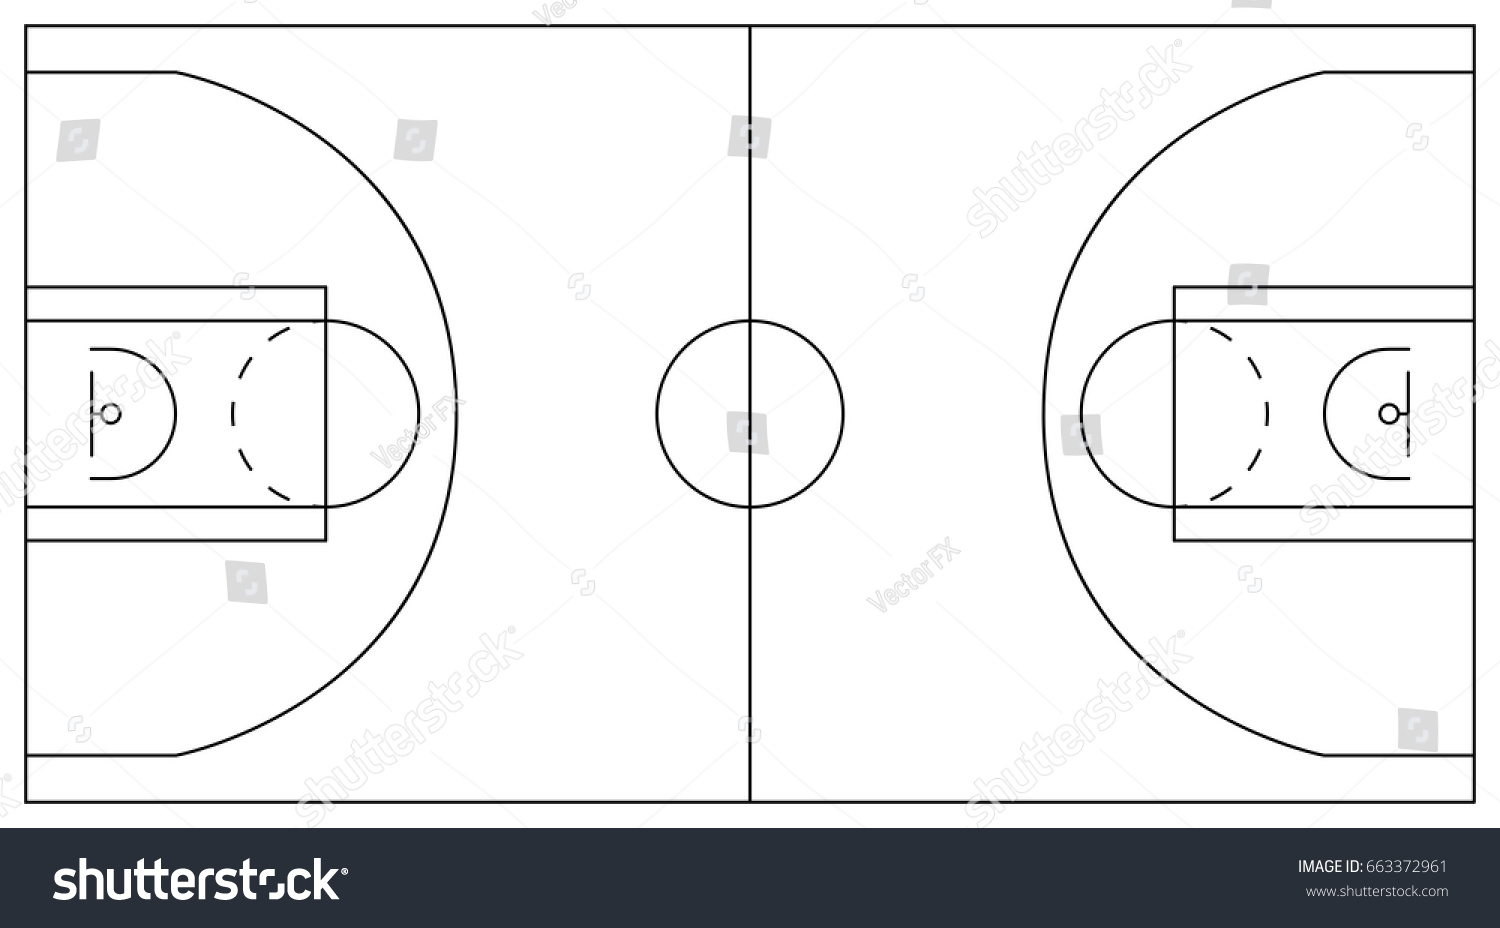 Basketball court plan lines areas center stock vector for Basketball court plan